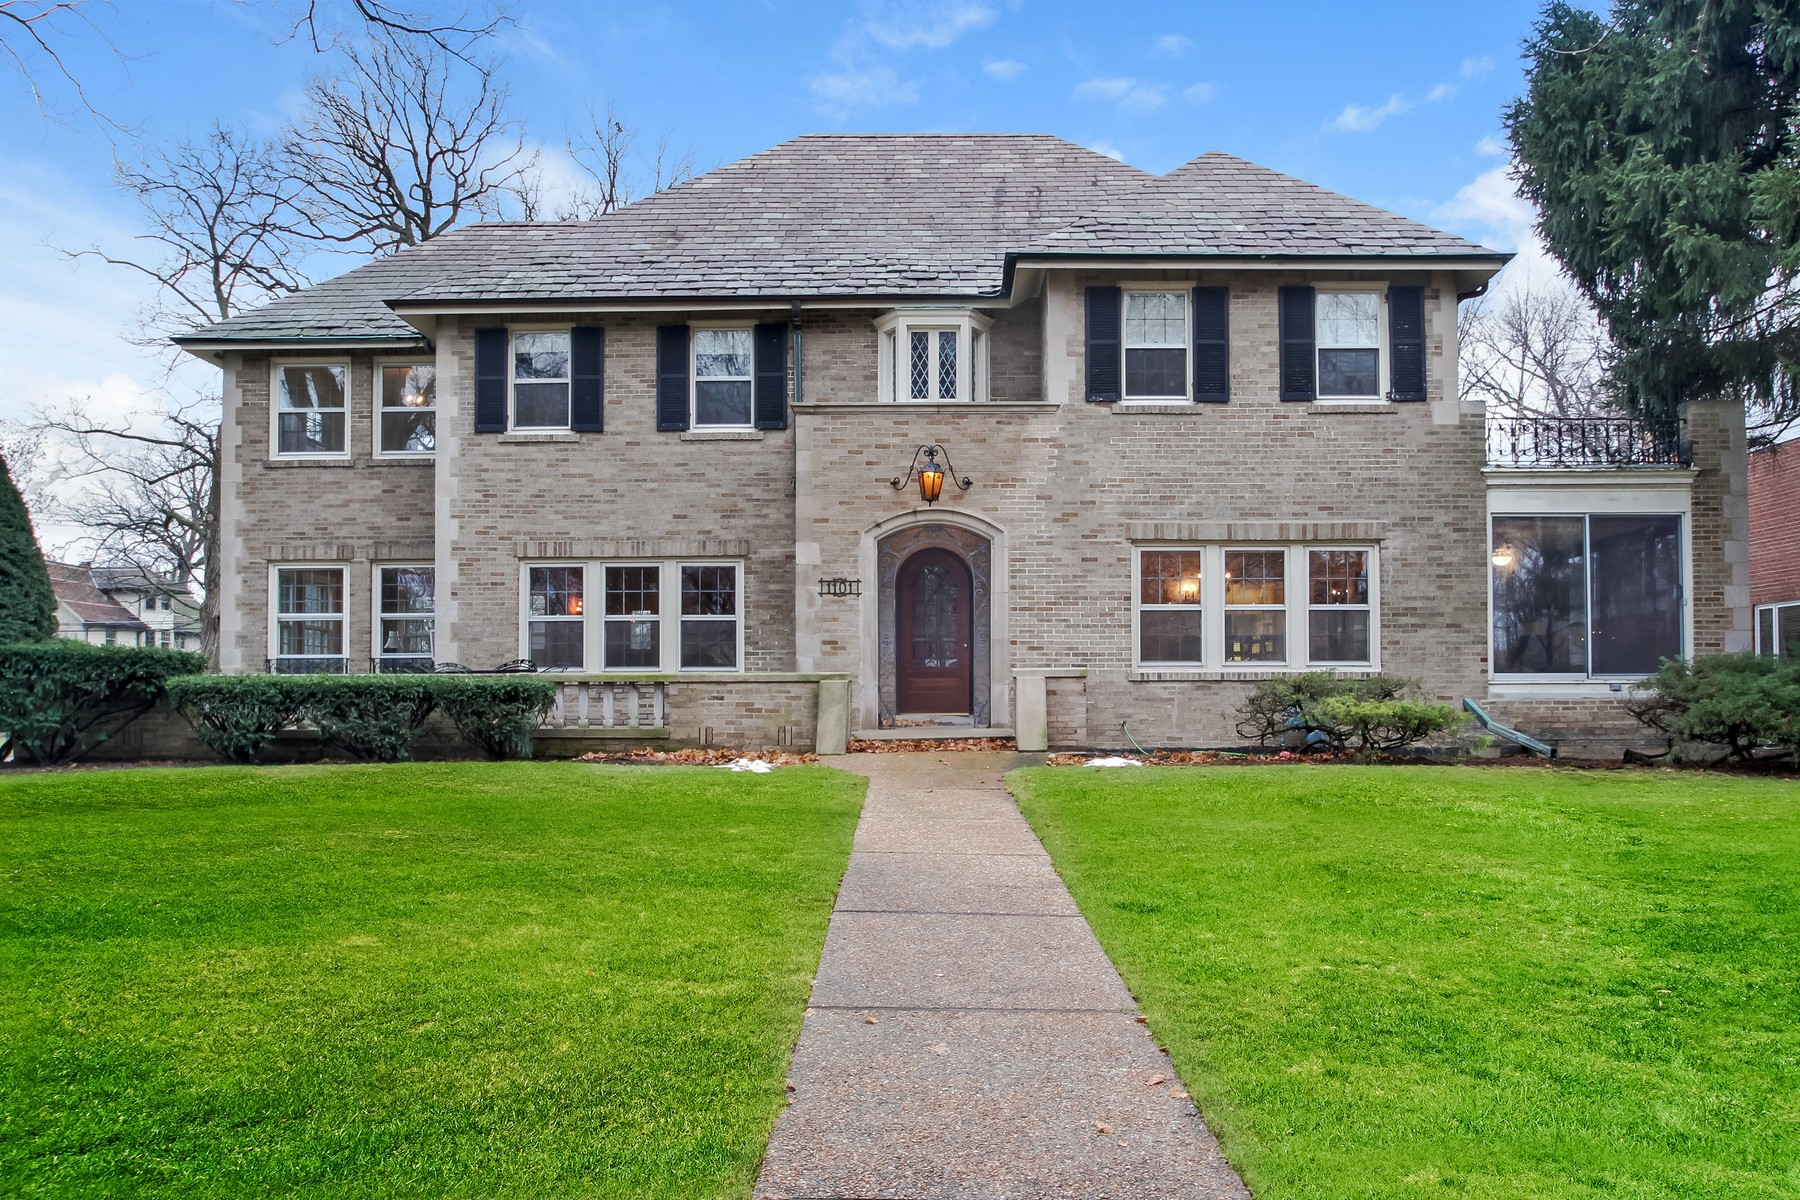 Single Family Home for Sale at Situated On Extra Large Lot In The Heart Of The Historic Chestnut District 1101 Chestnut Avenue Wilmette, 60091 United States